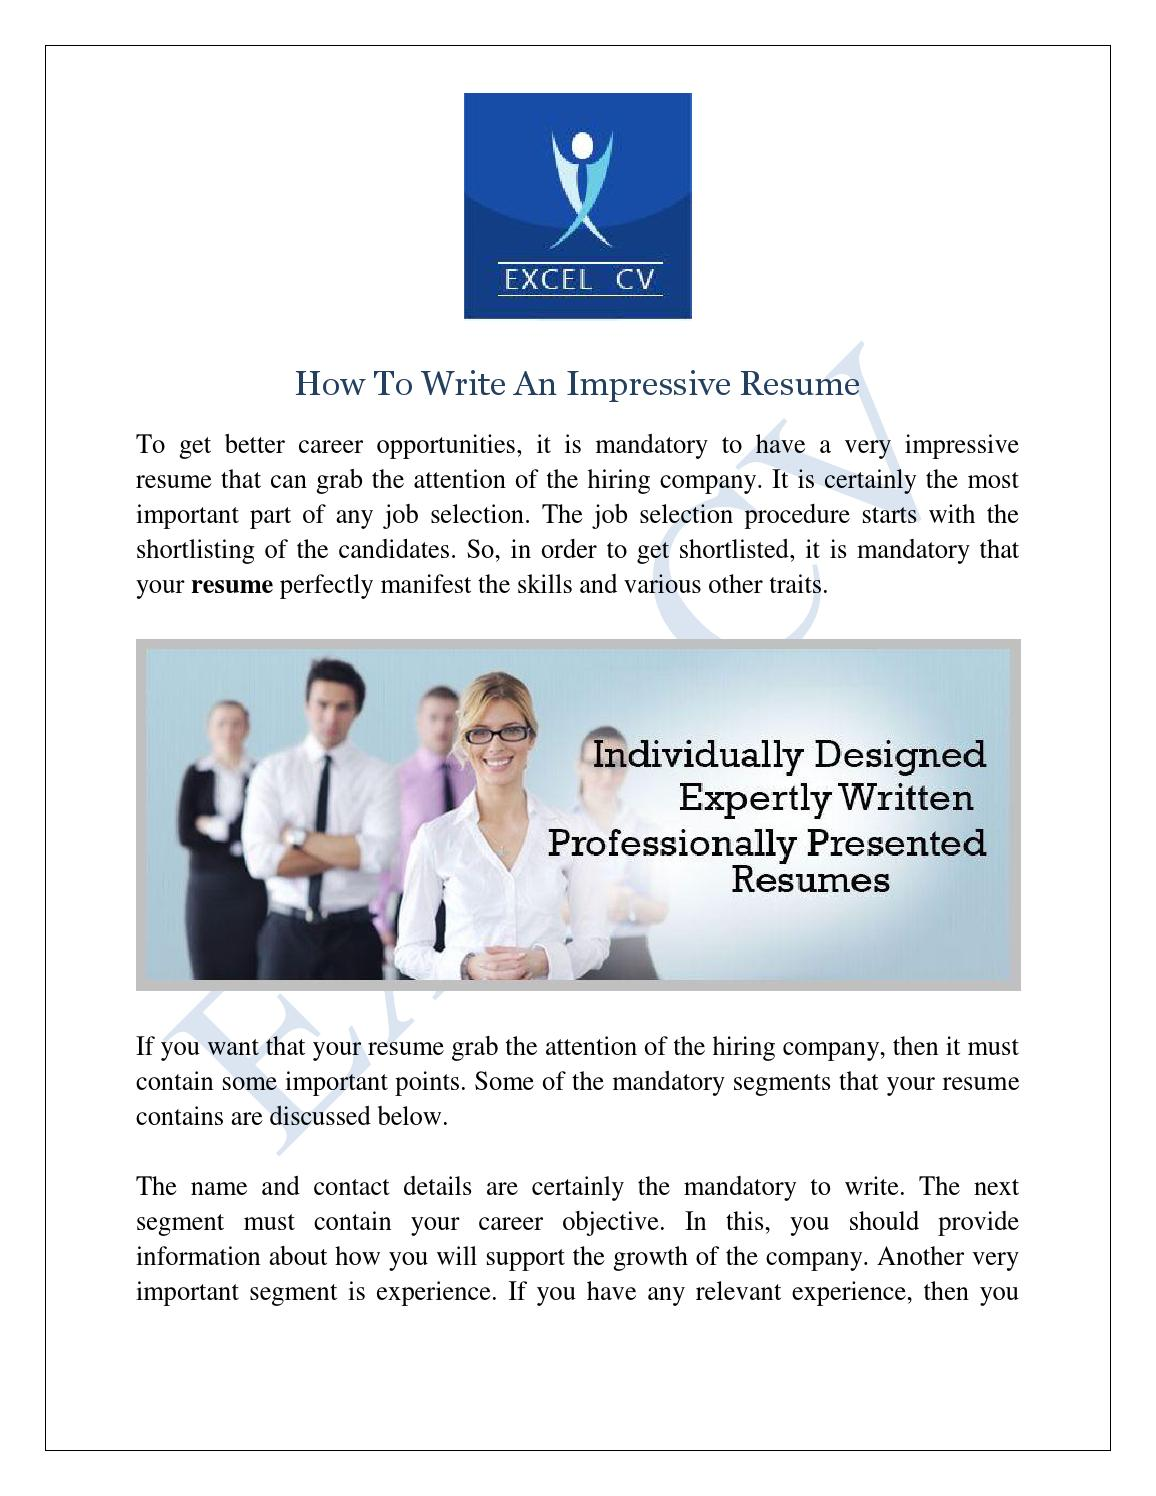 Best resume writing services 2019 ranked